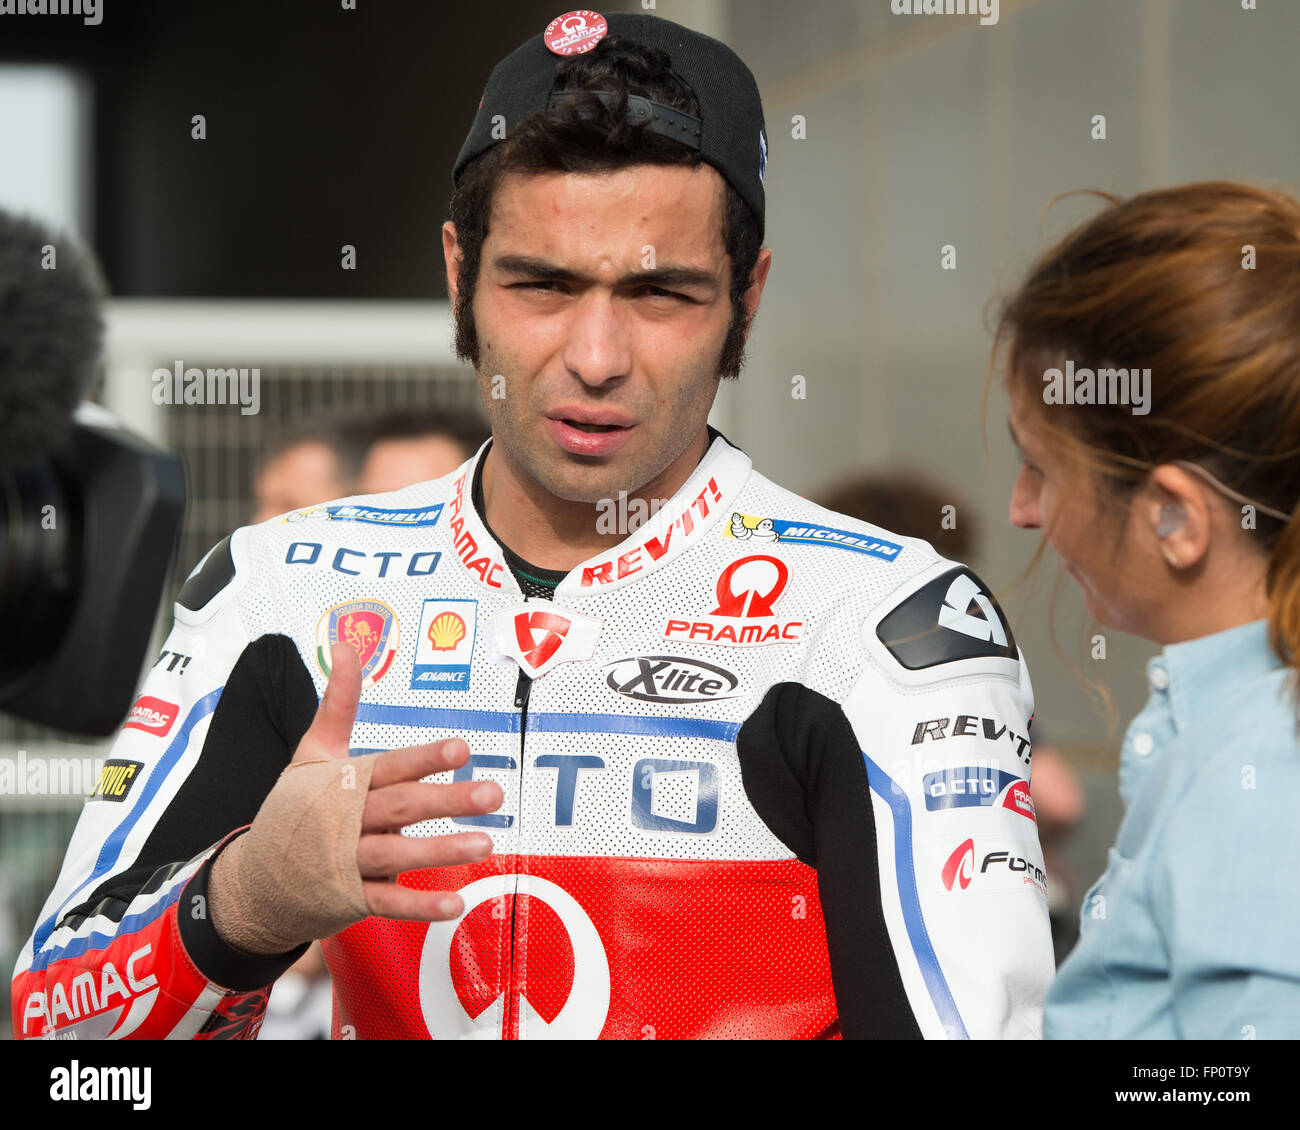 Qatar. 17th Mar, 2016. Danilo Petrucci  attends the group photo and media sessions before the start of the Commercial - Stock Image